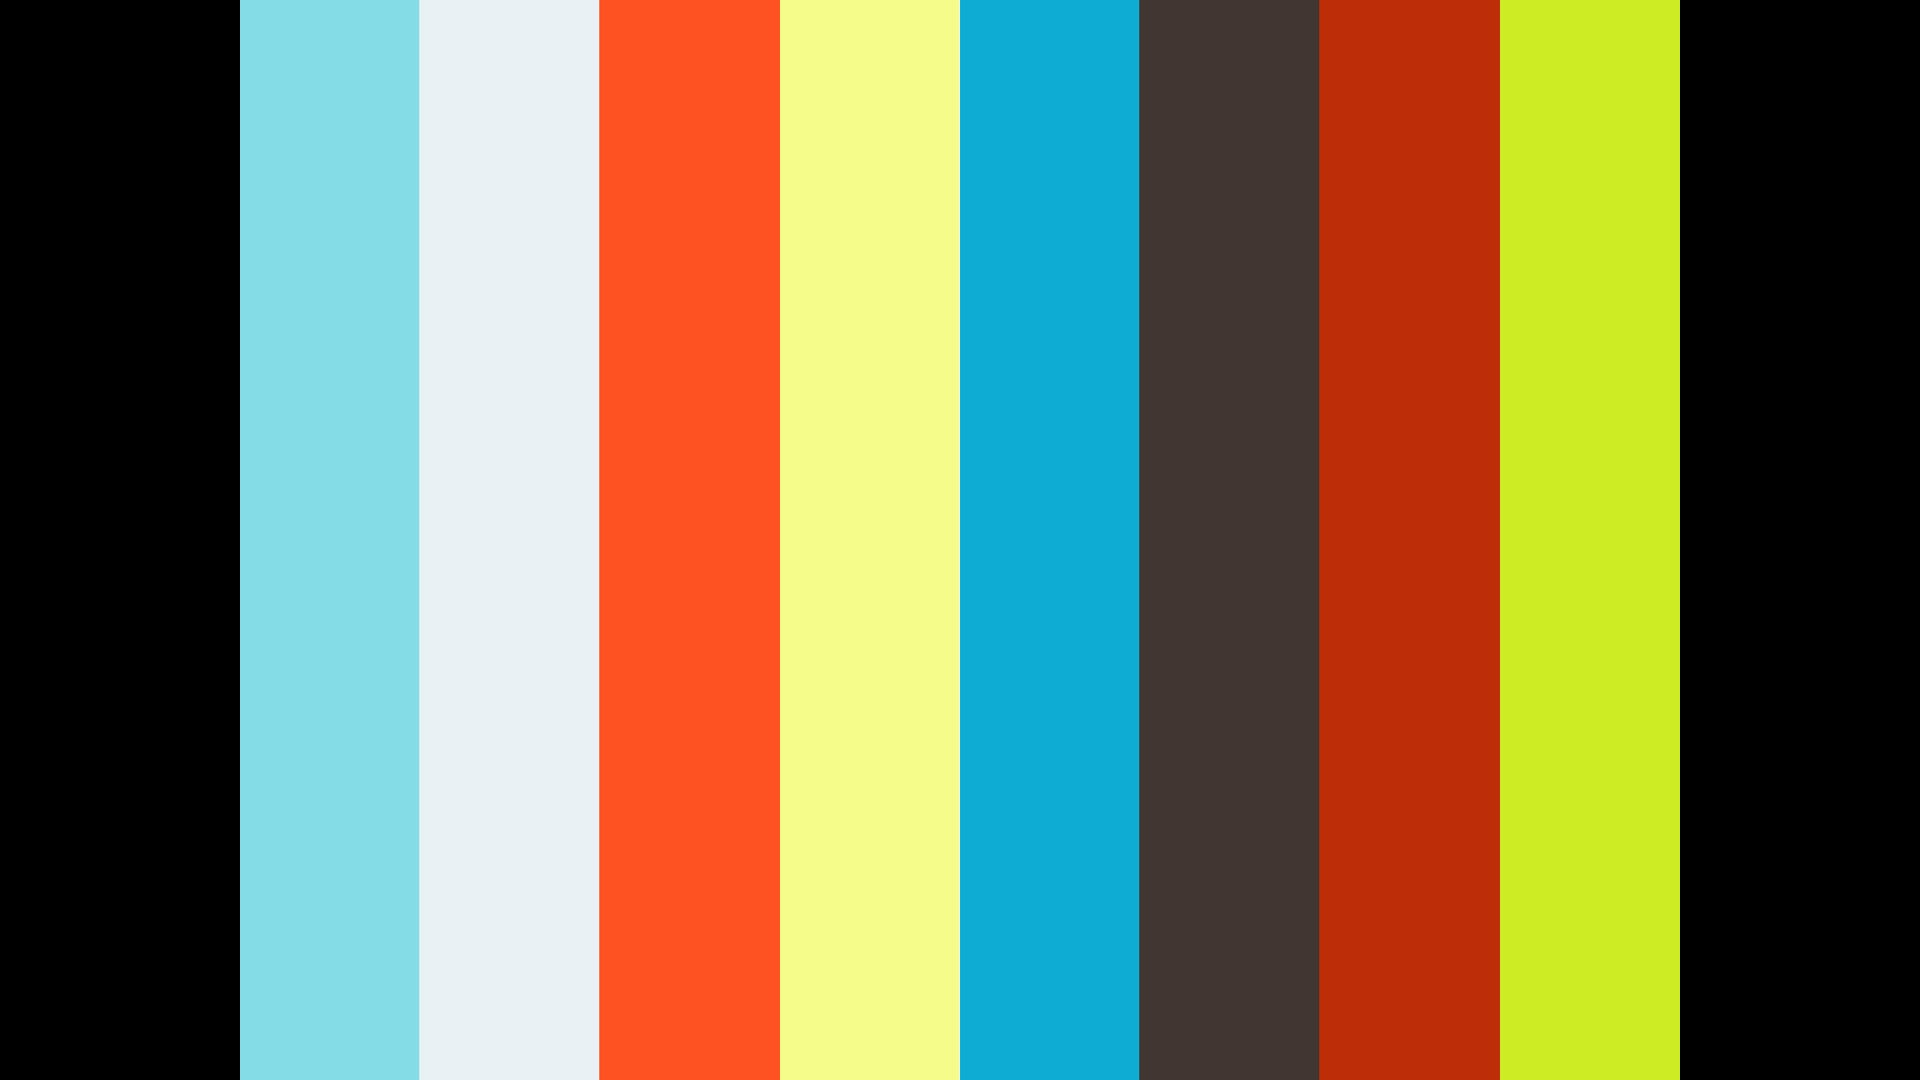 #ReachingNextGen Update - Summer 2018